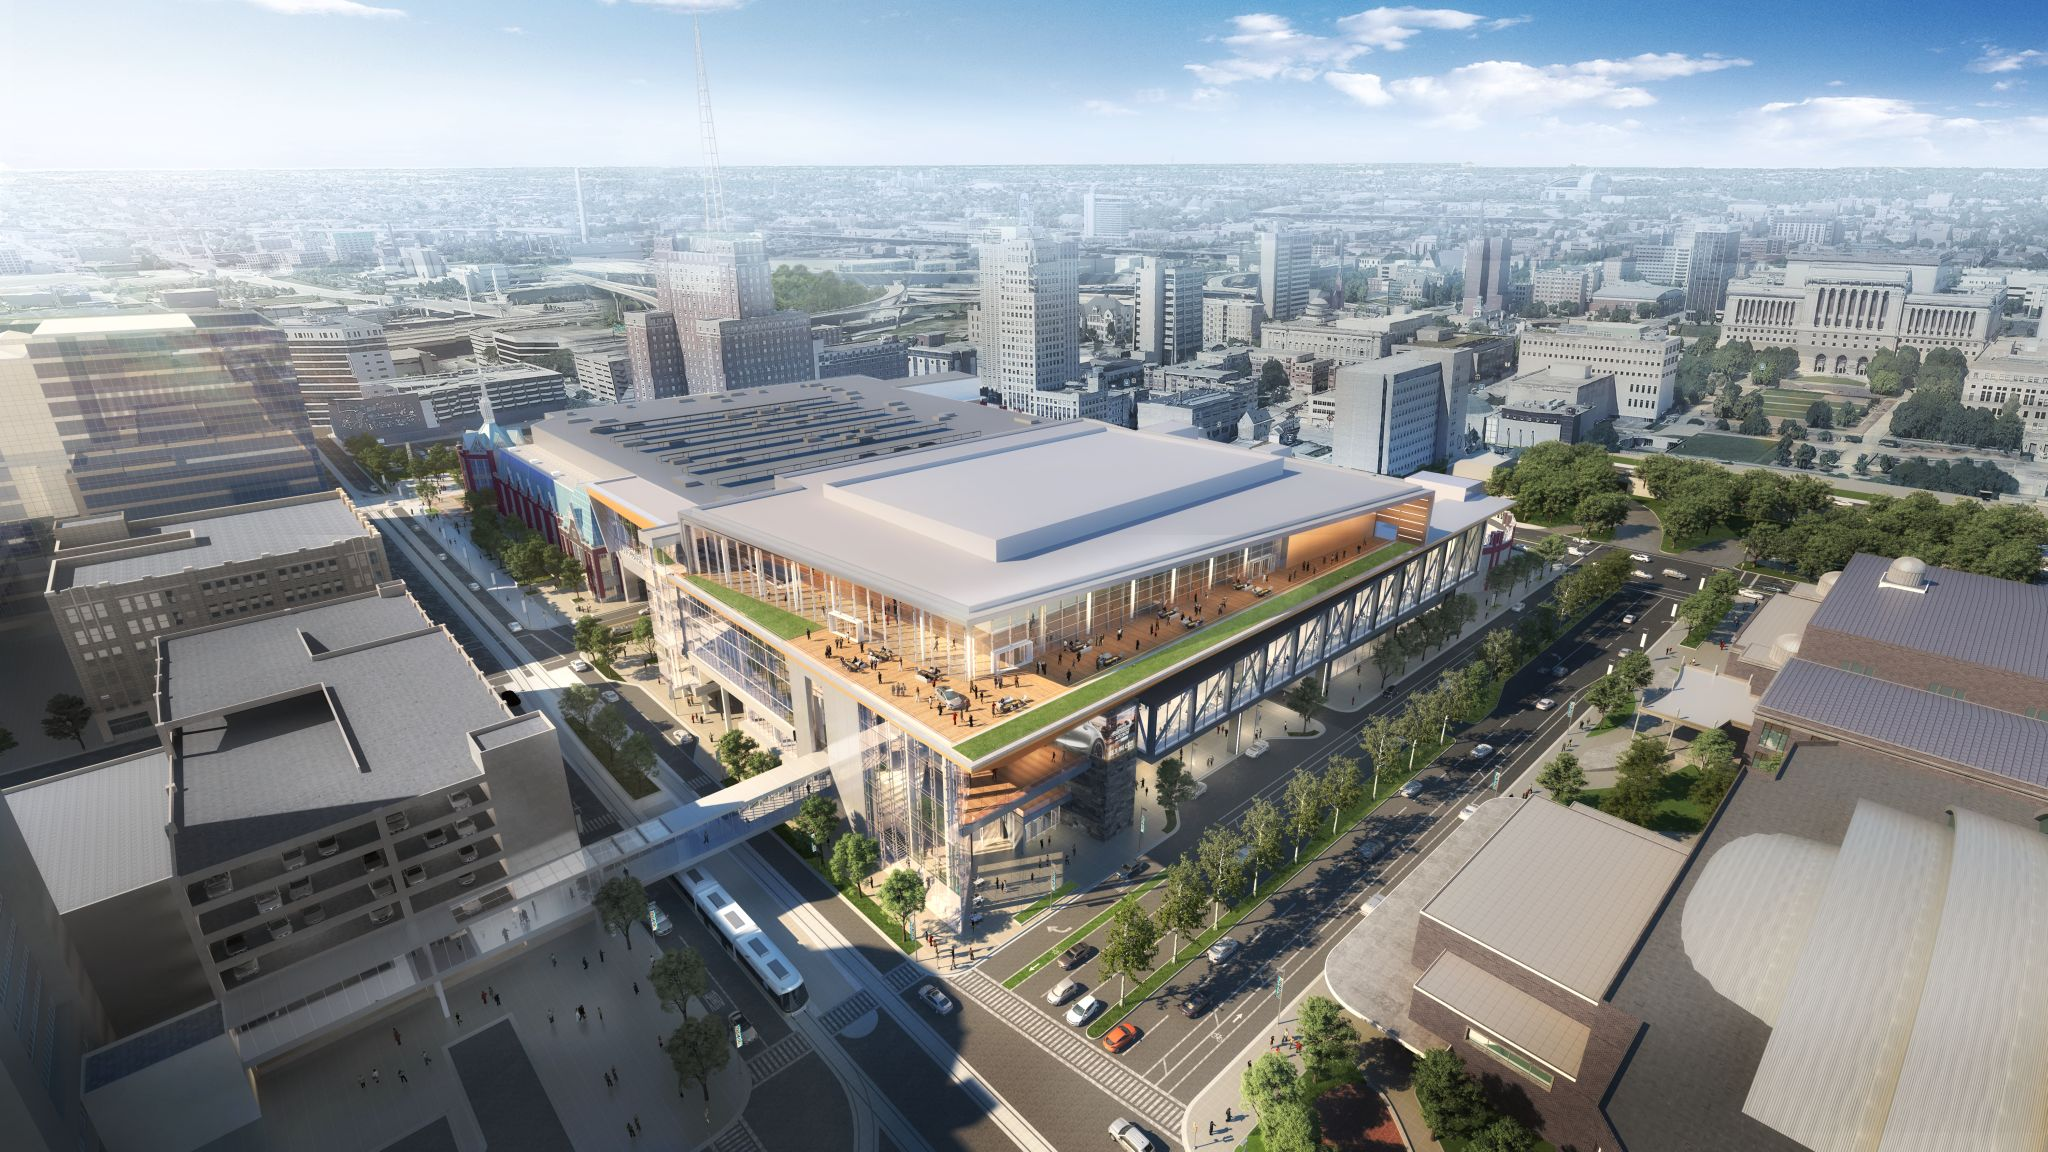 Wisconsin Center expansion rendering. Rendering by Eppstein Uhen Architects and tvsdesign.